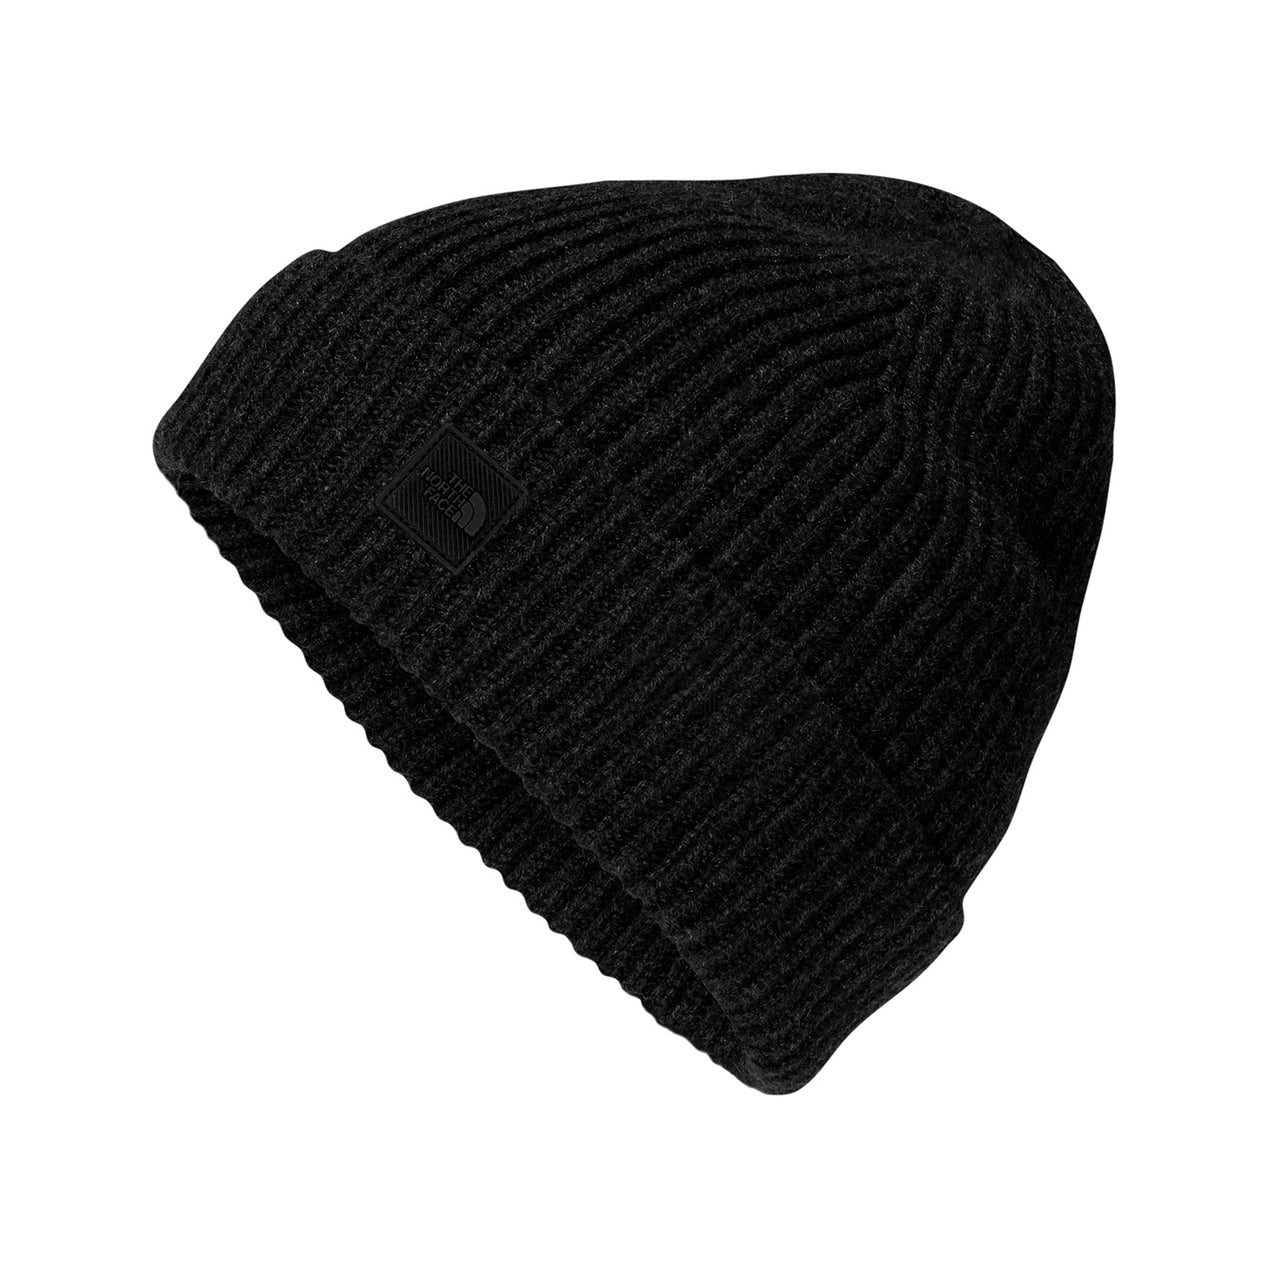 The North Face Cryos Cashmere Beanie  8d54b19adfc6